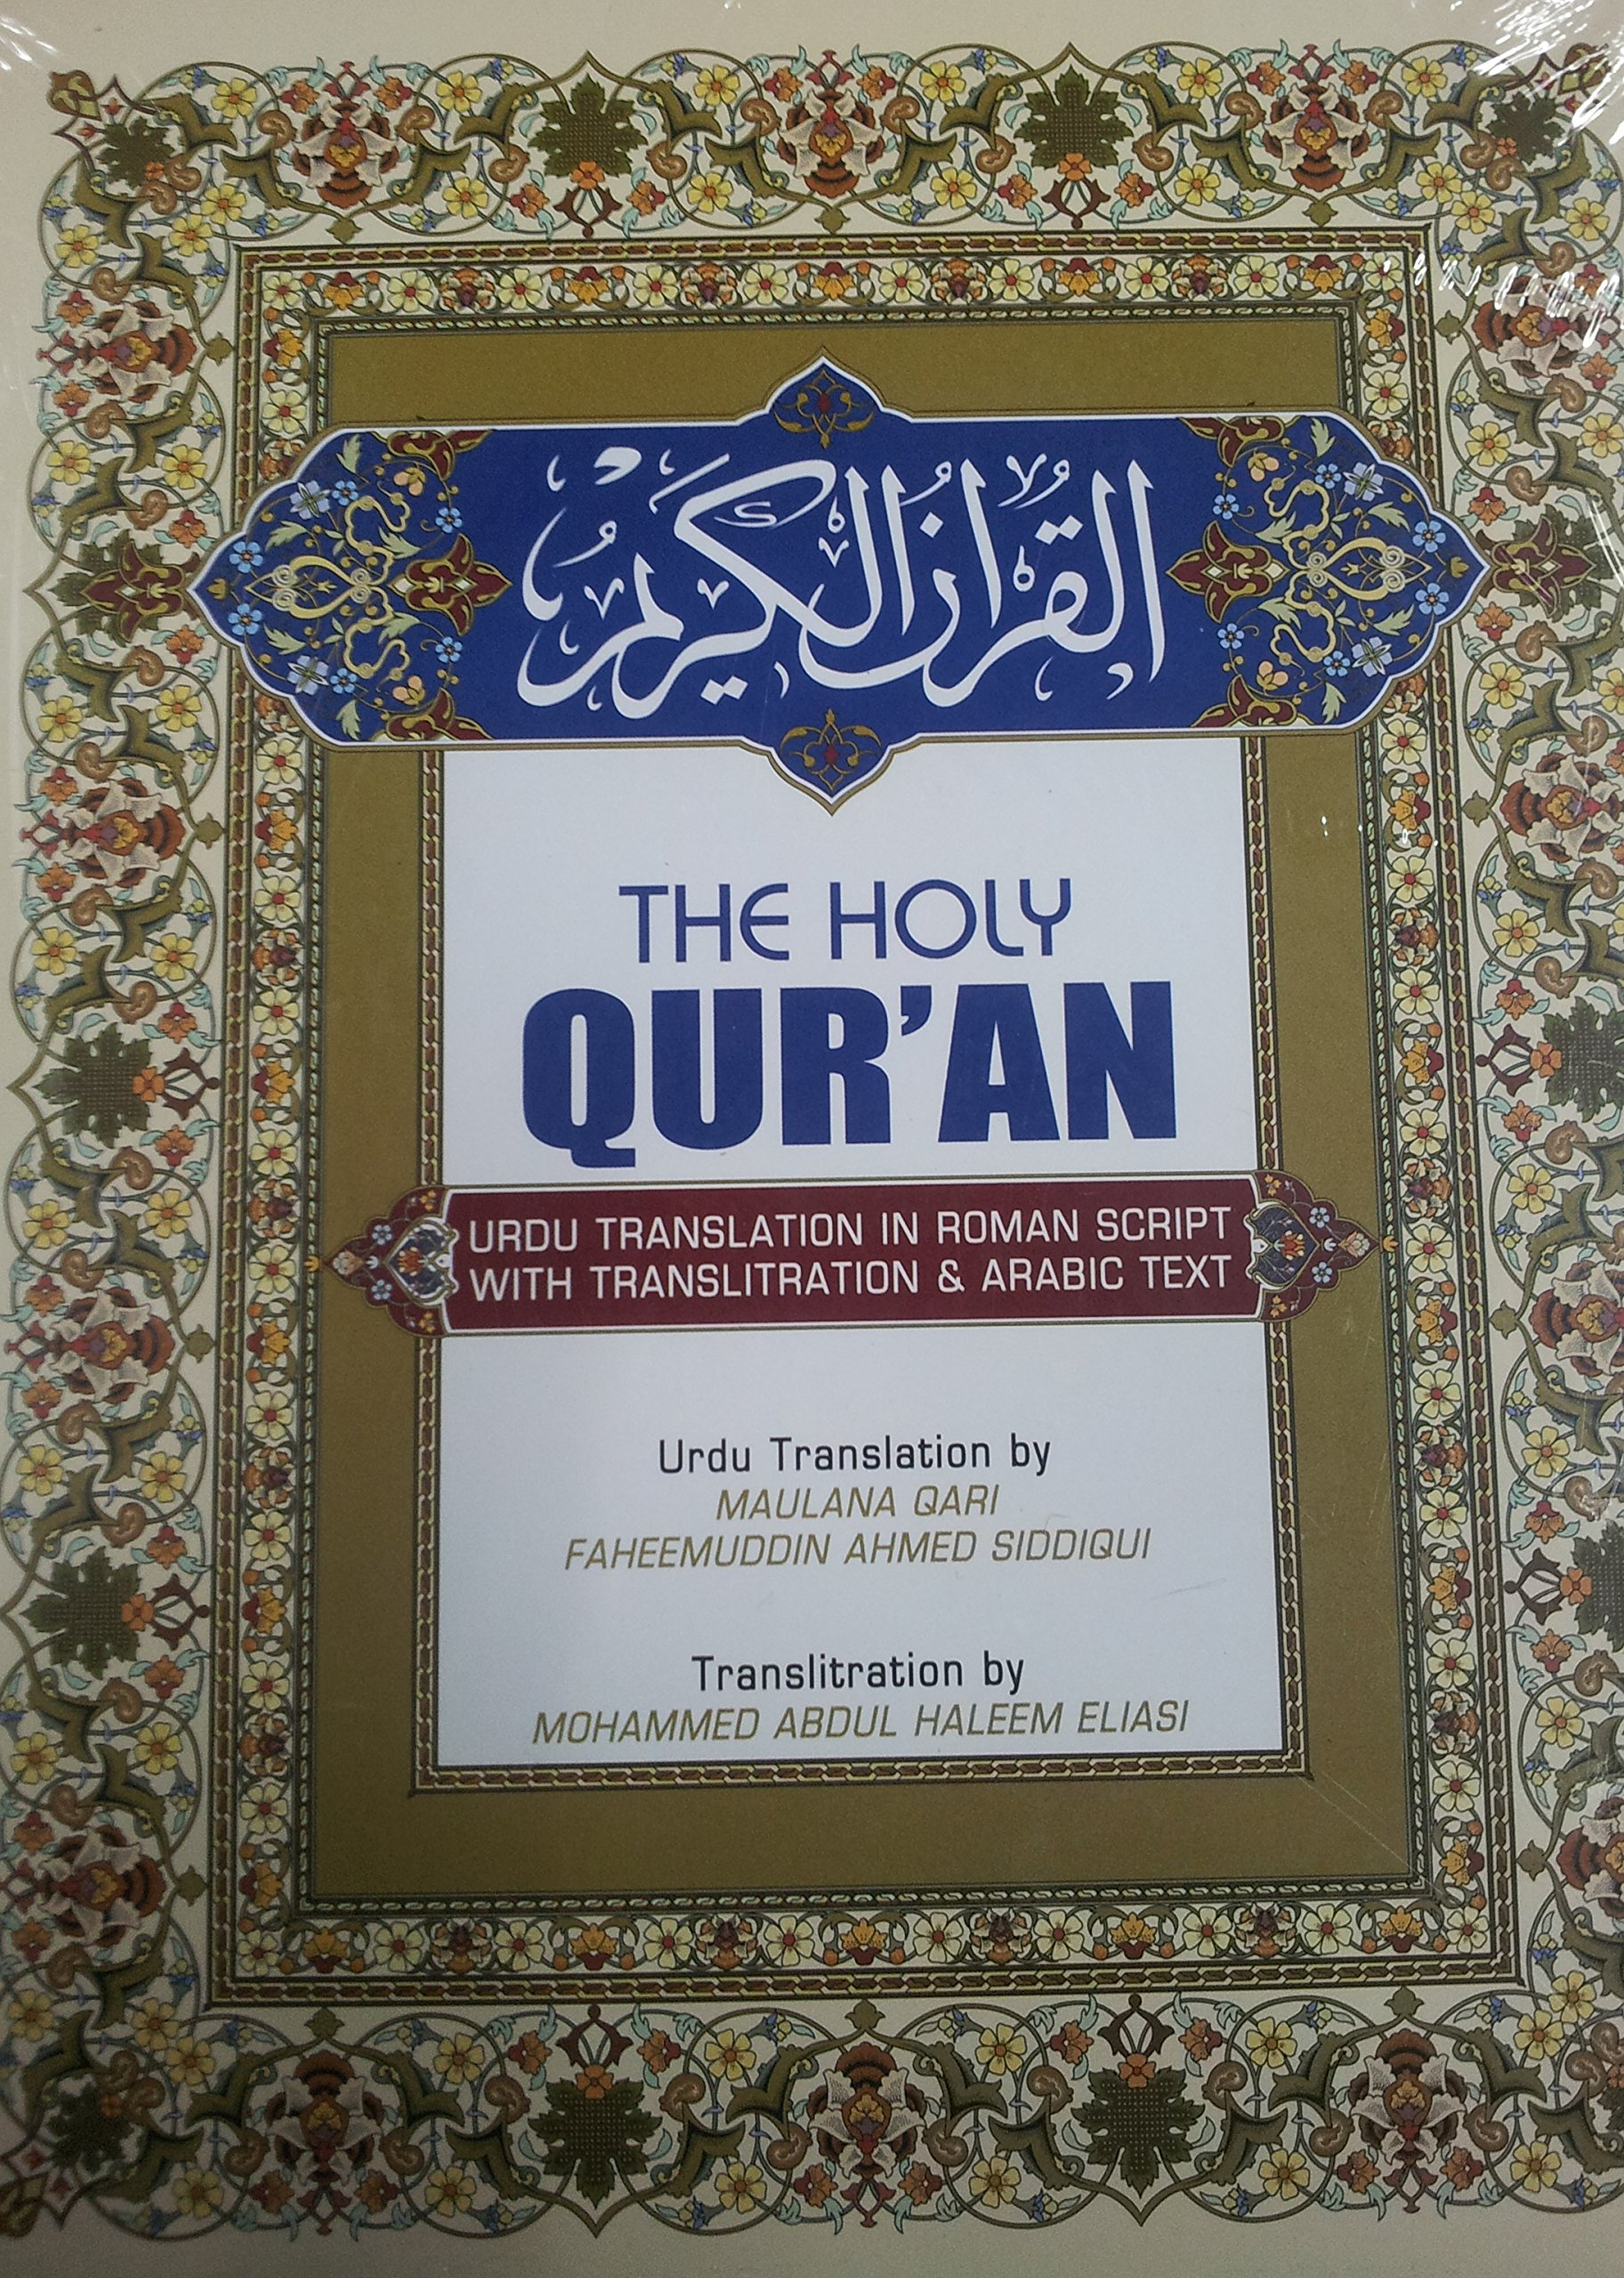 Buy The Holy Quran Urdu Translation In Roman Script With Arabic Text Book  Online at Low Prices in India | The Holy Quran Urdu Translation In Roman  Script ...